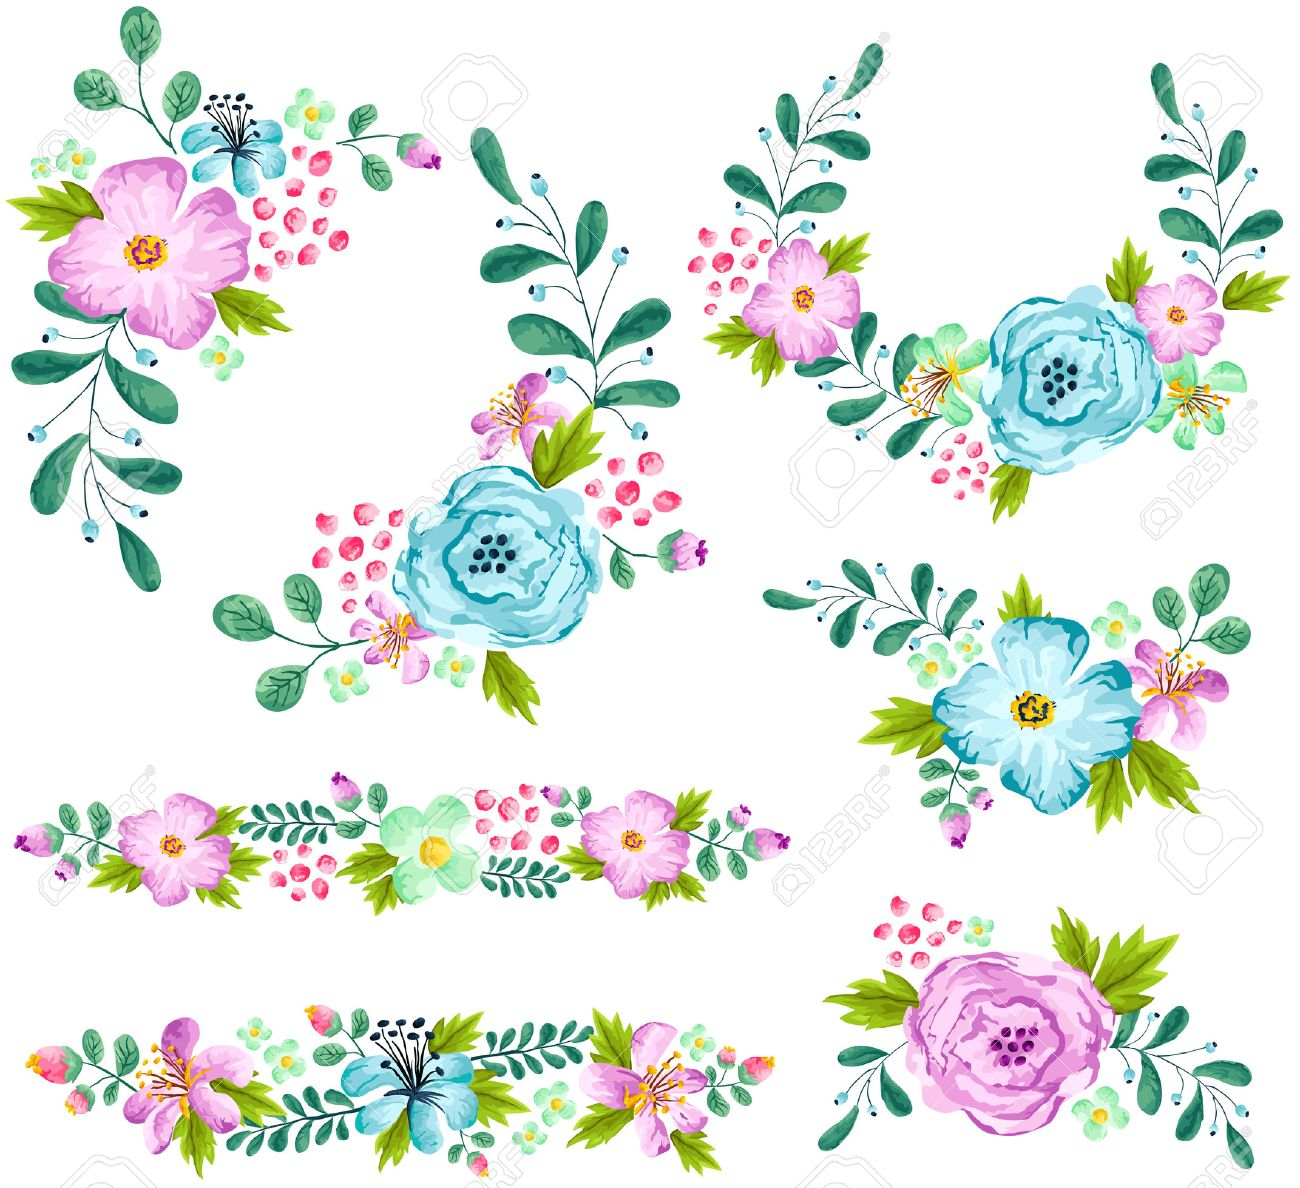 Blue and Turquoise Spring Flower Watercolor Set - 57125510